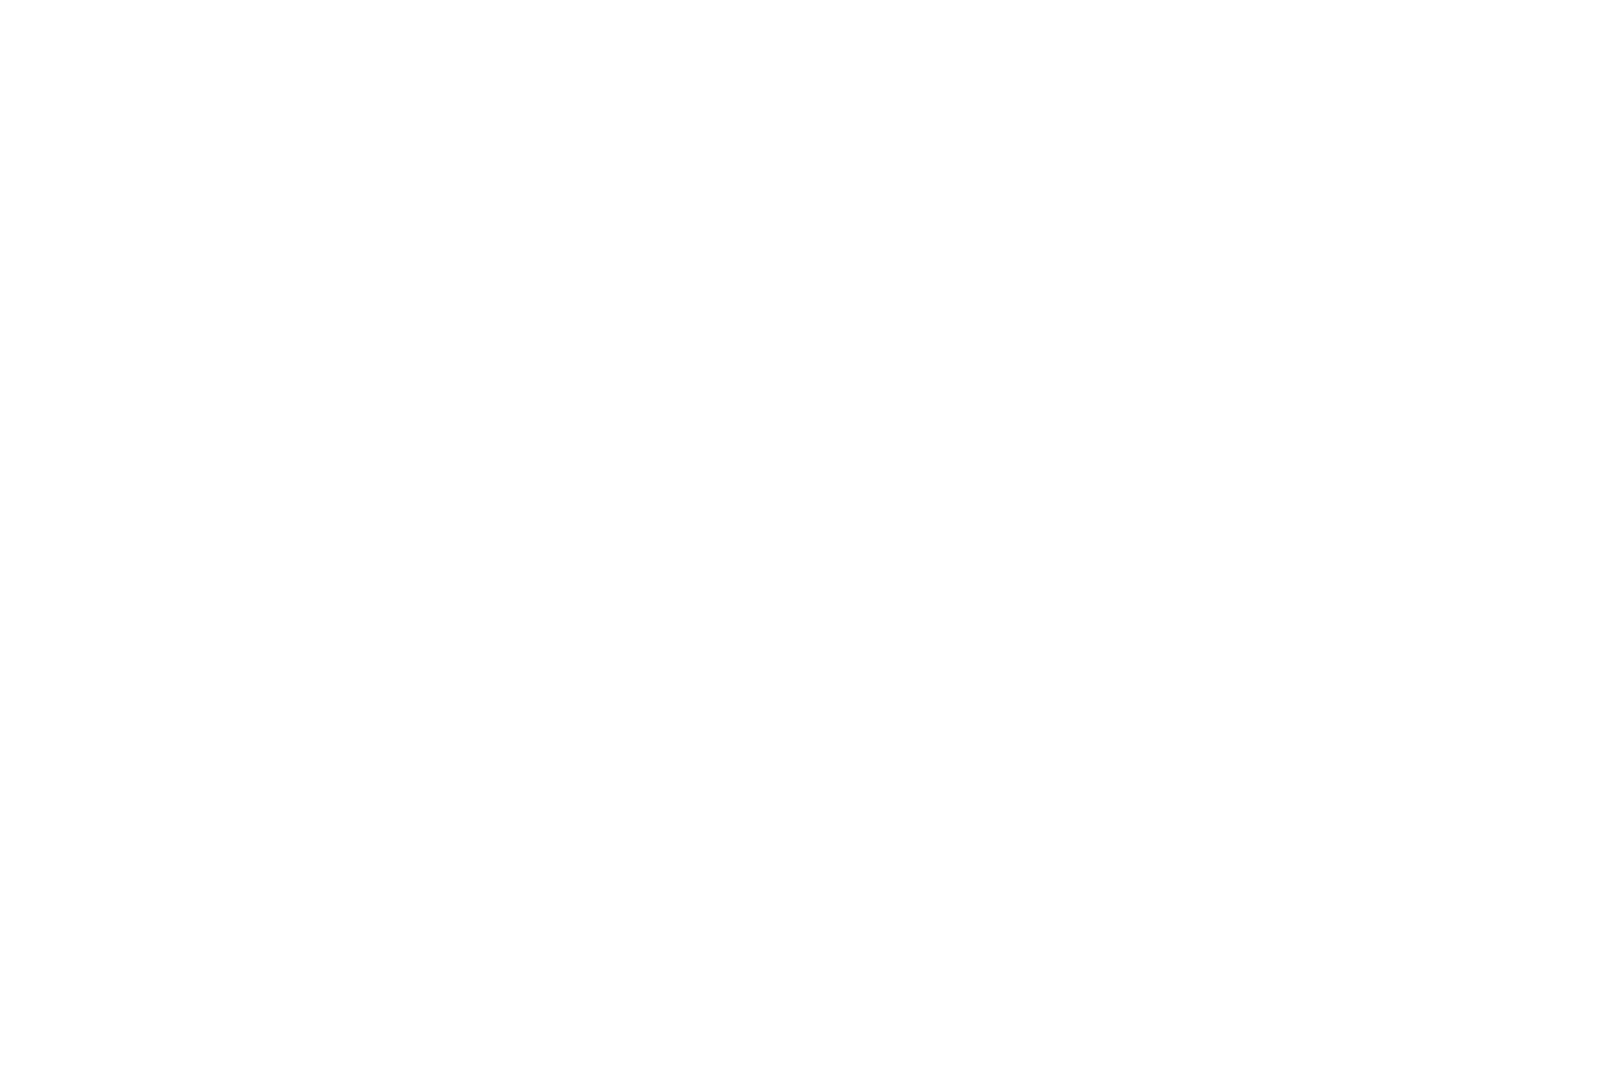 WAF - We Are Fitness